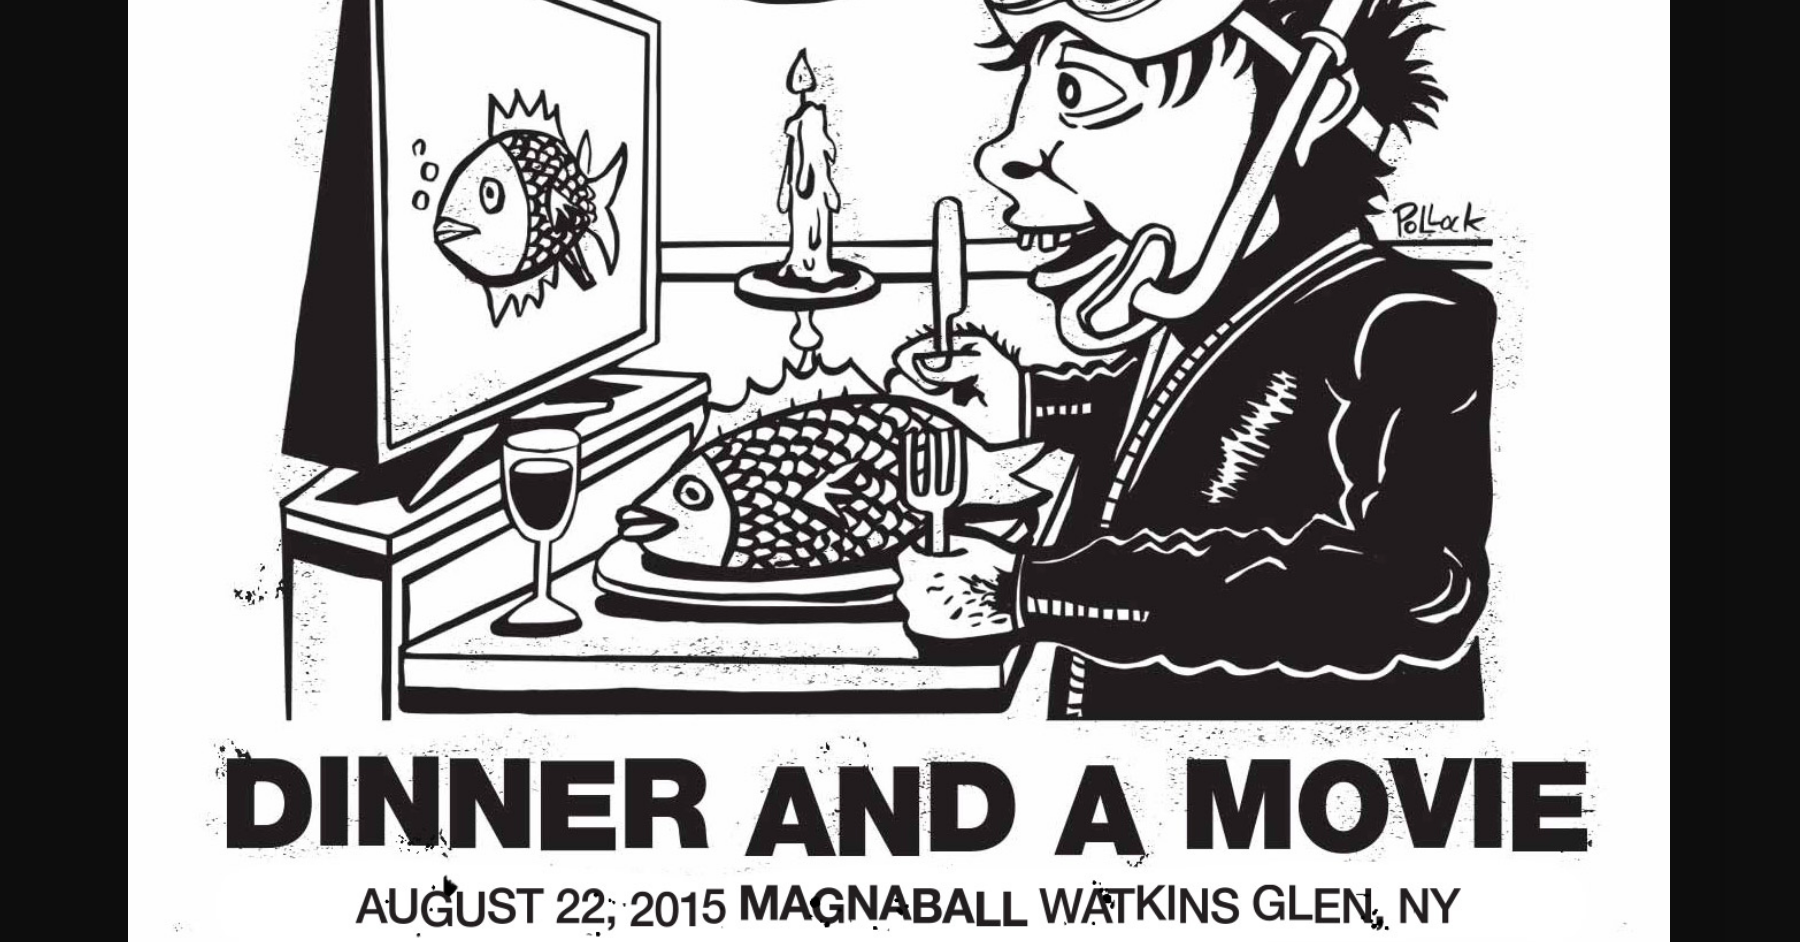 phish dinner and a movie